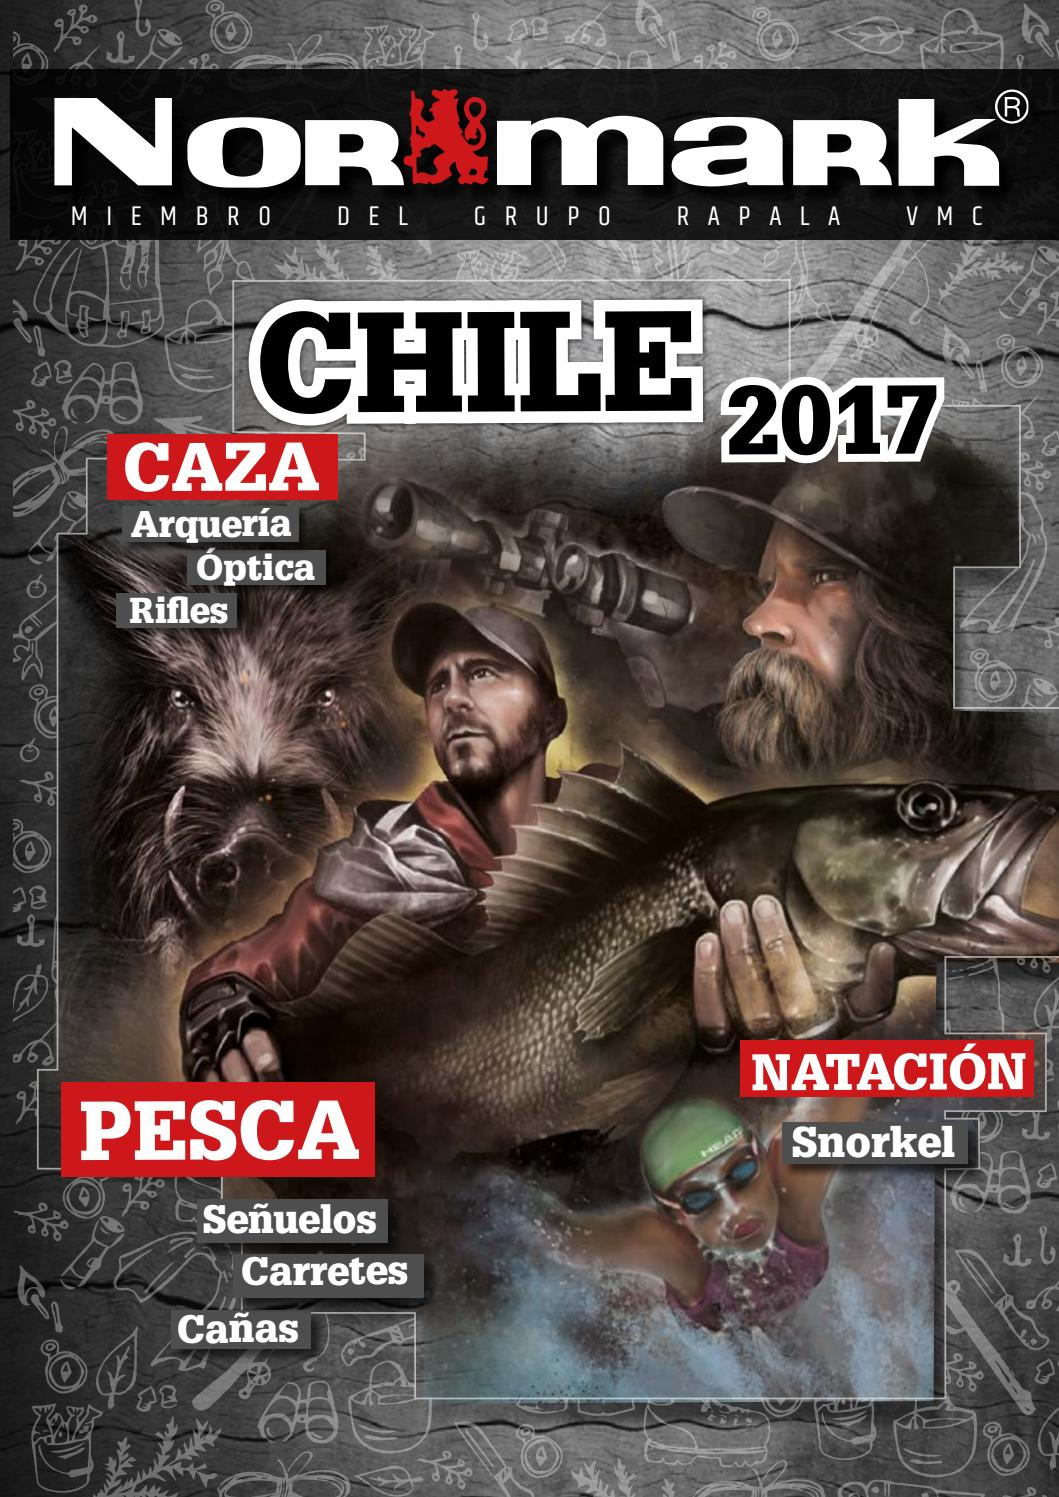 Catálogo Normark Chile 2017 by Normark Spain - issuu 702d7344667a